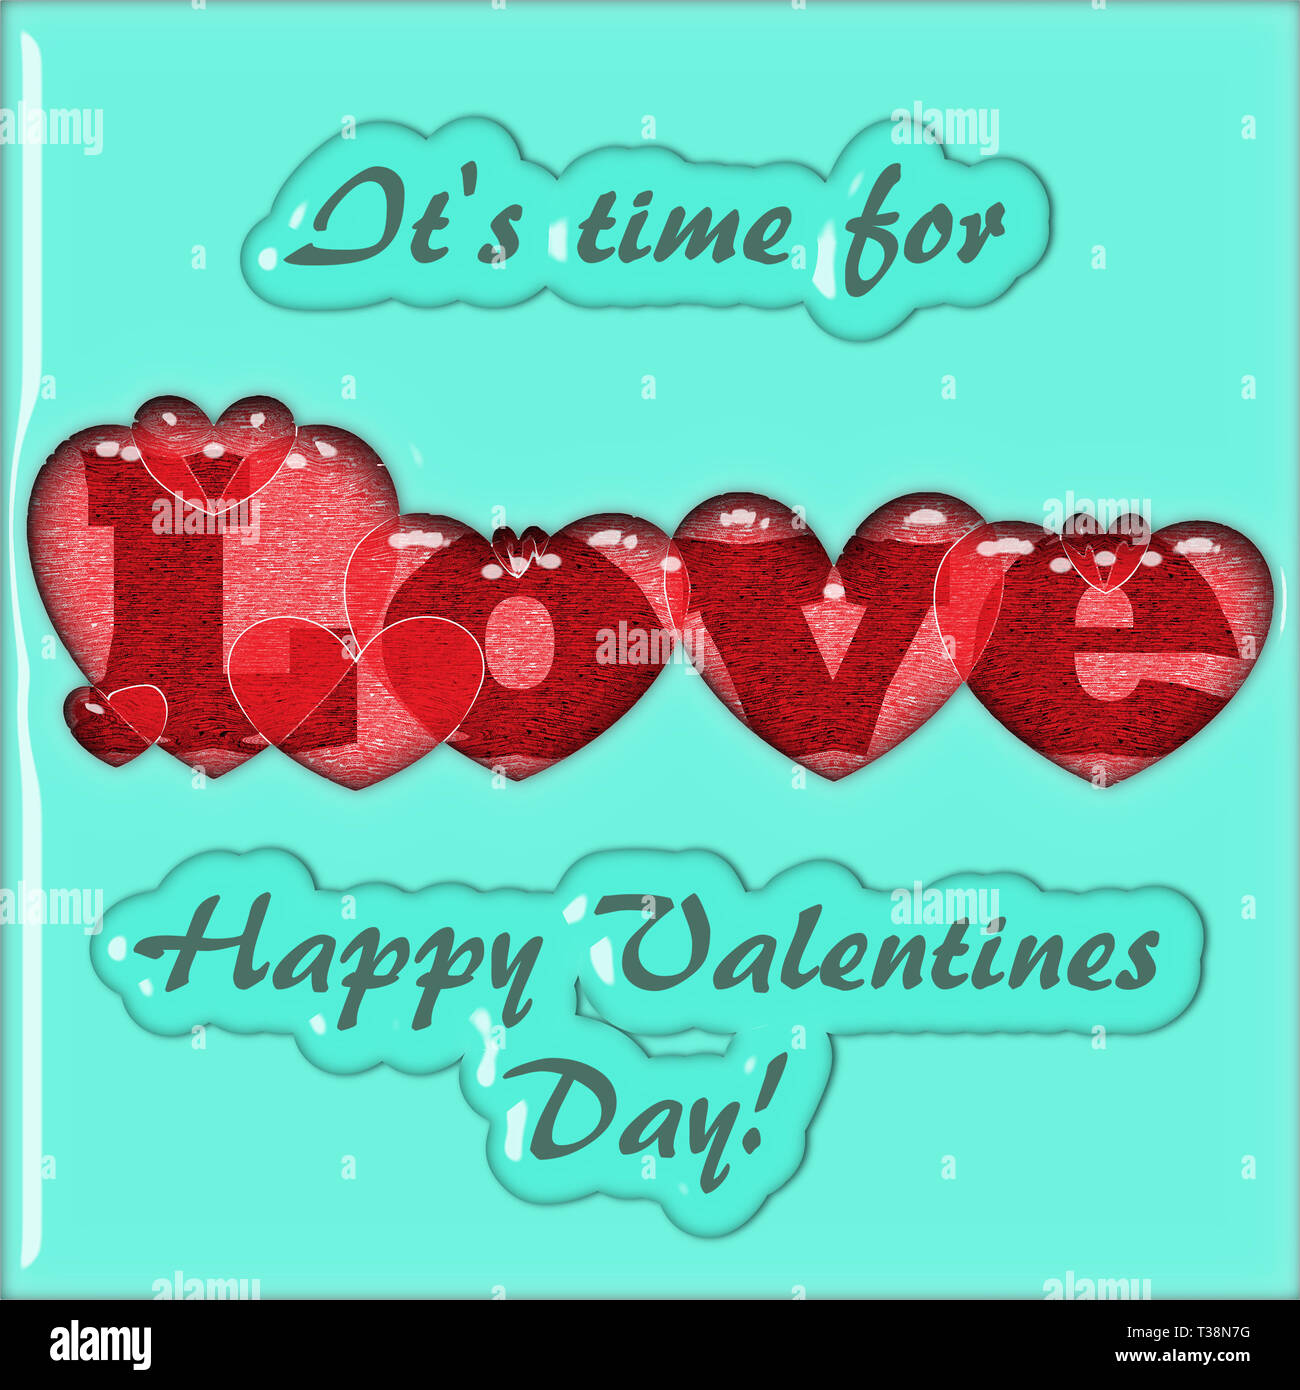 St. Valentine's Day Greeting Card... - Stock Image